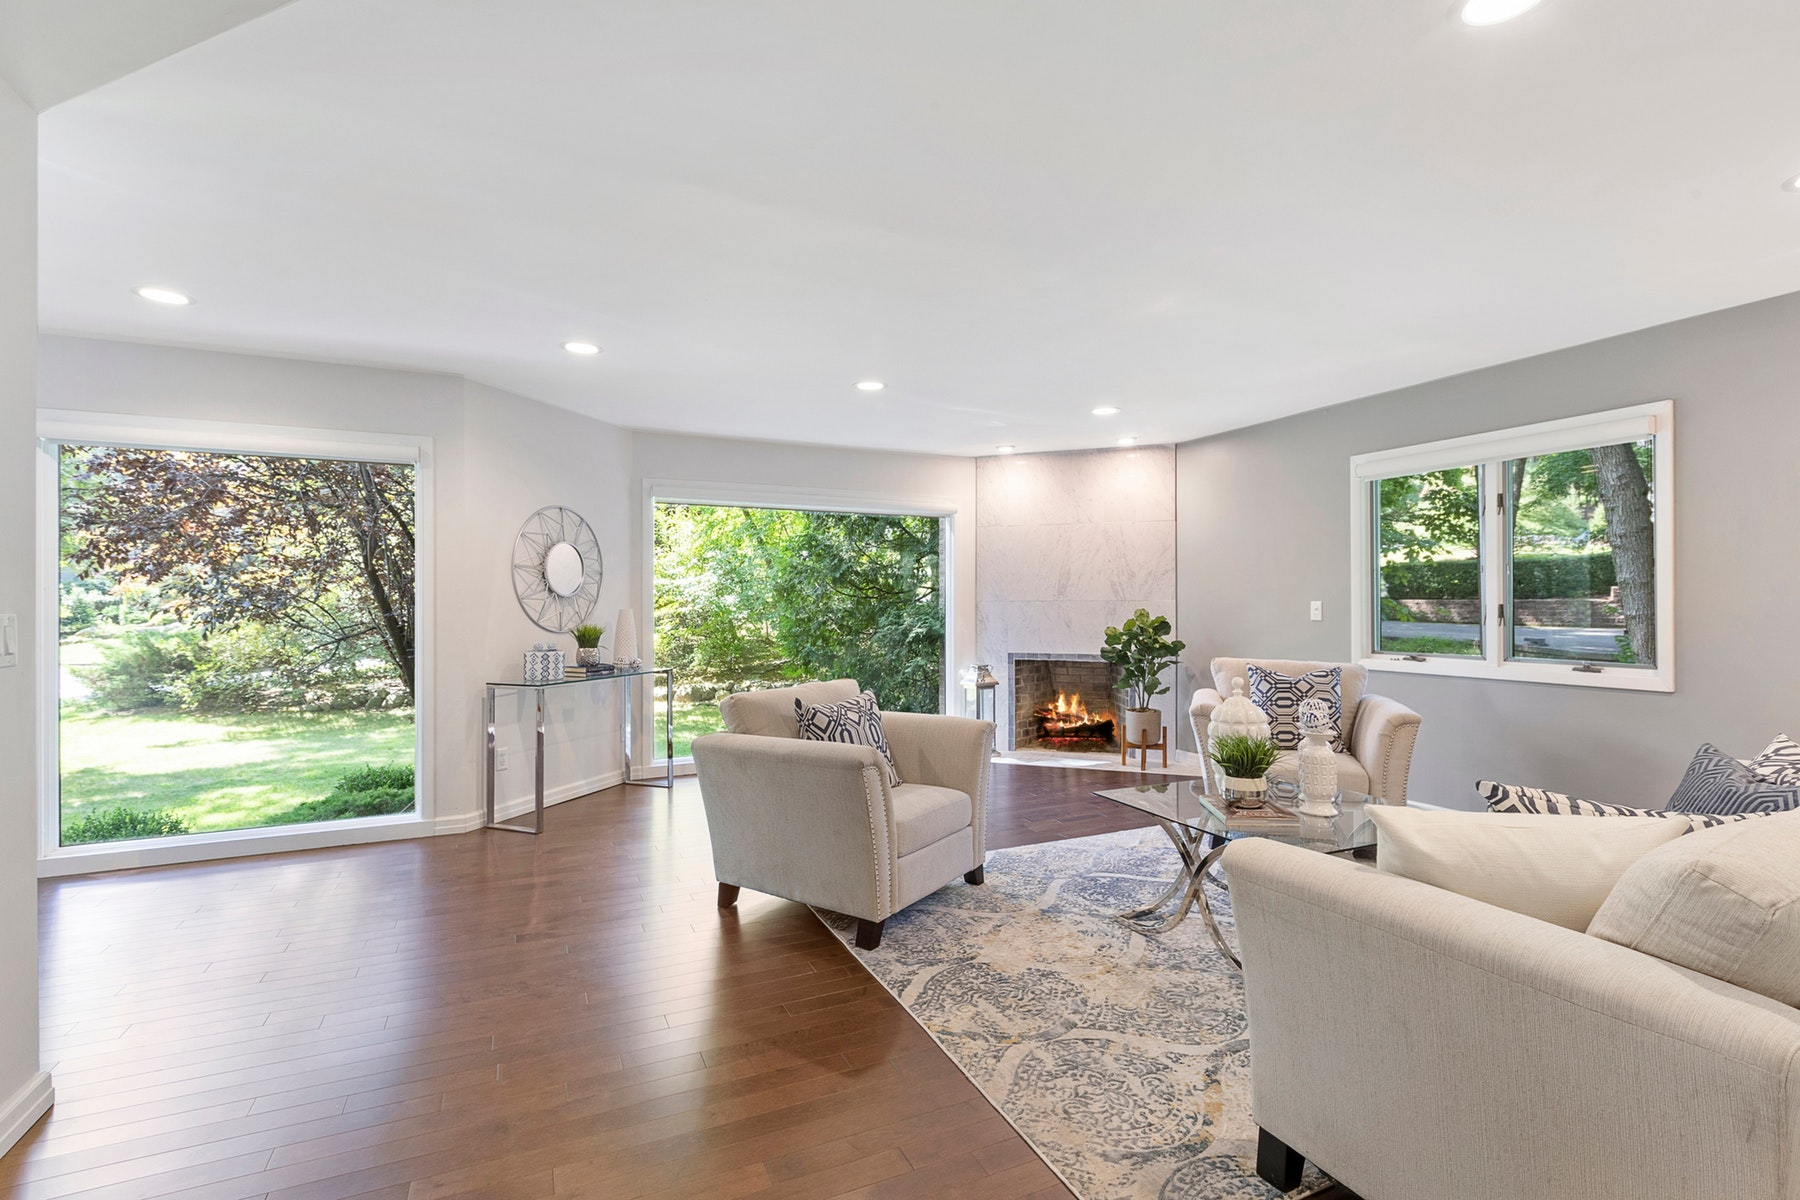 Single Family Home for Sale at Exquisite Modern Bergen County Masterpiece In A Premier Location. 12 Mill Road Extension, Woodcliff Lake, New Jersey 07677 United States